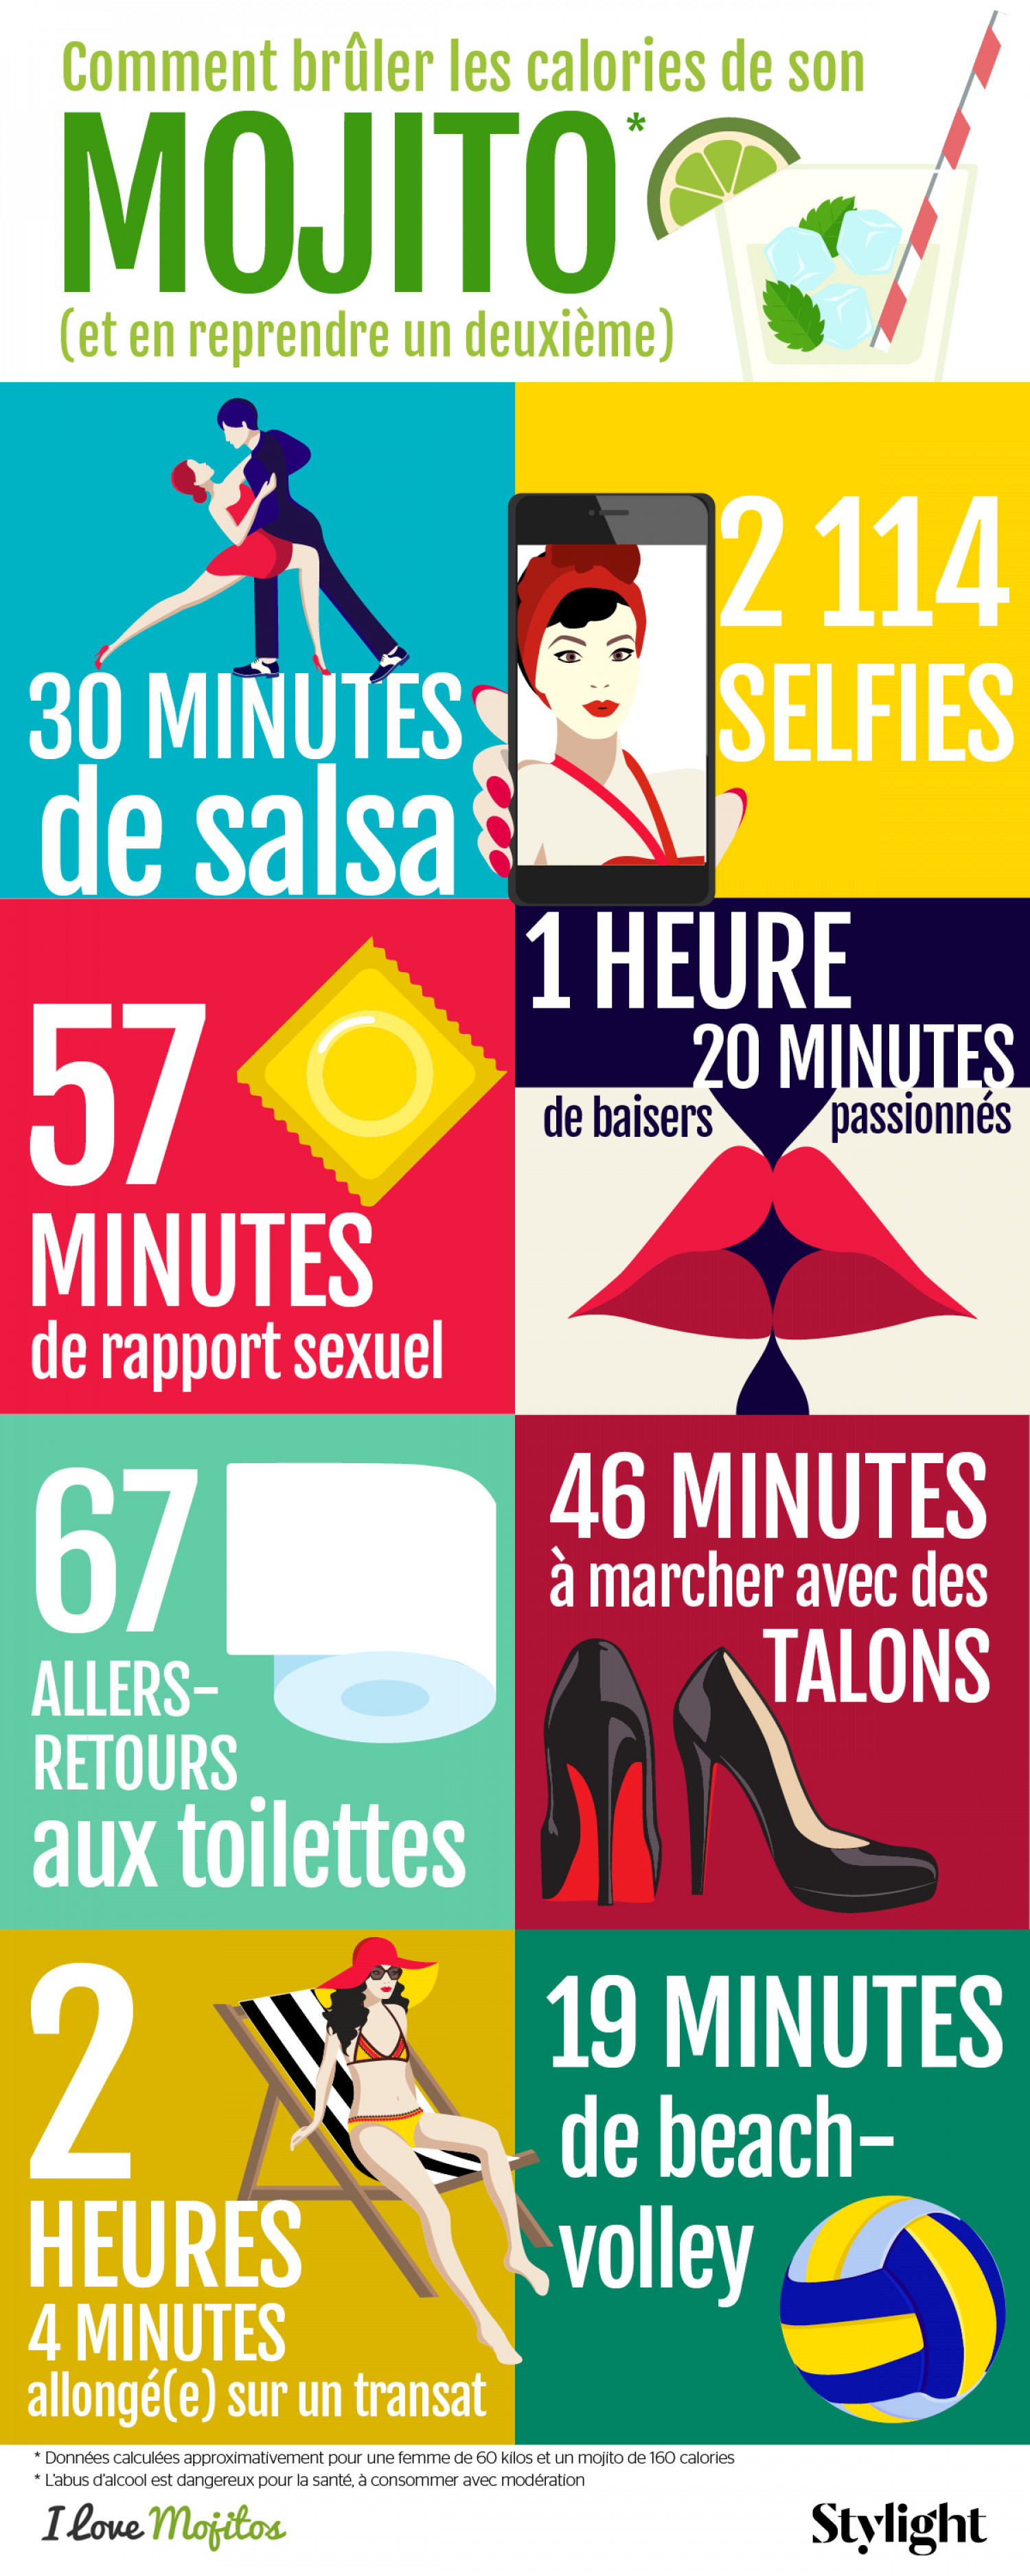 How to burn the calories of your mojito ? Infographic